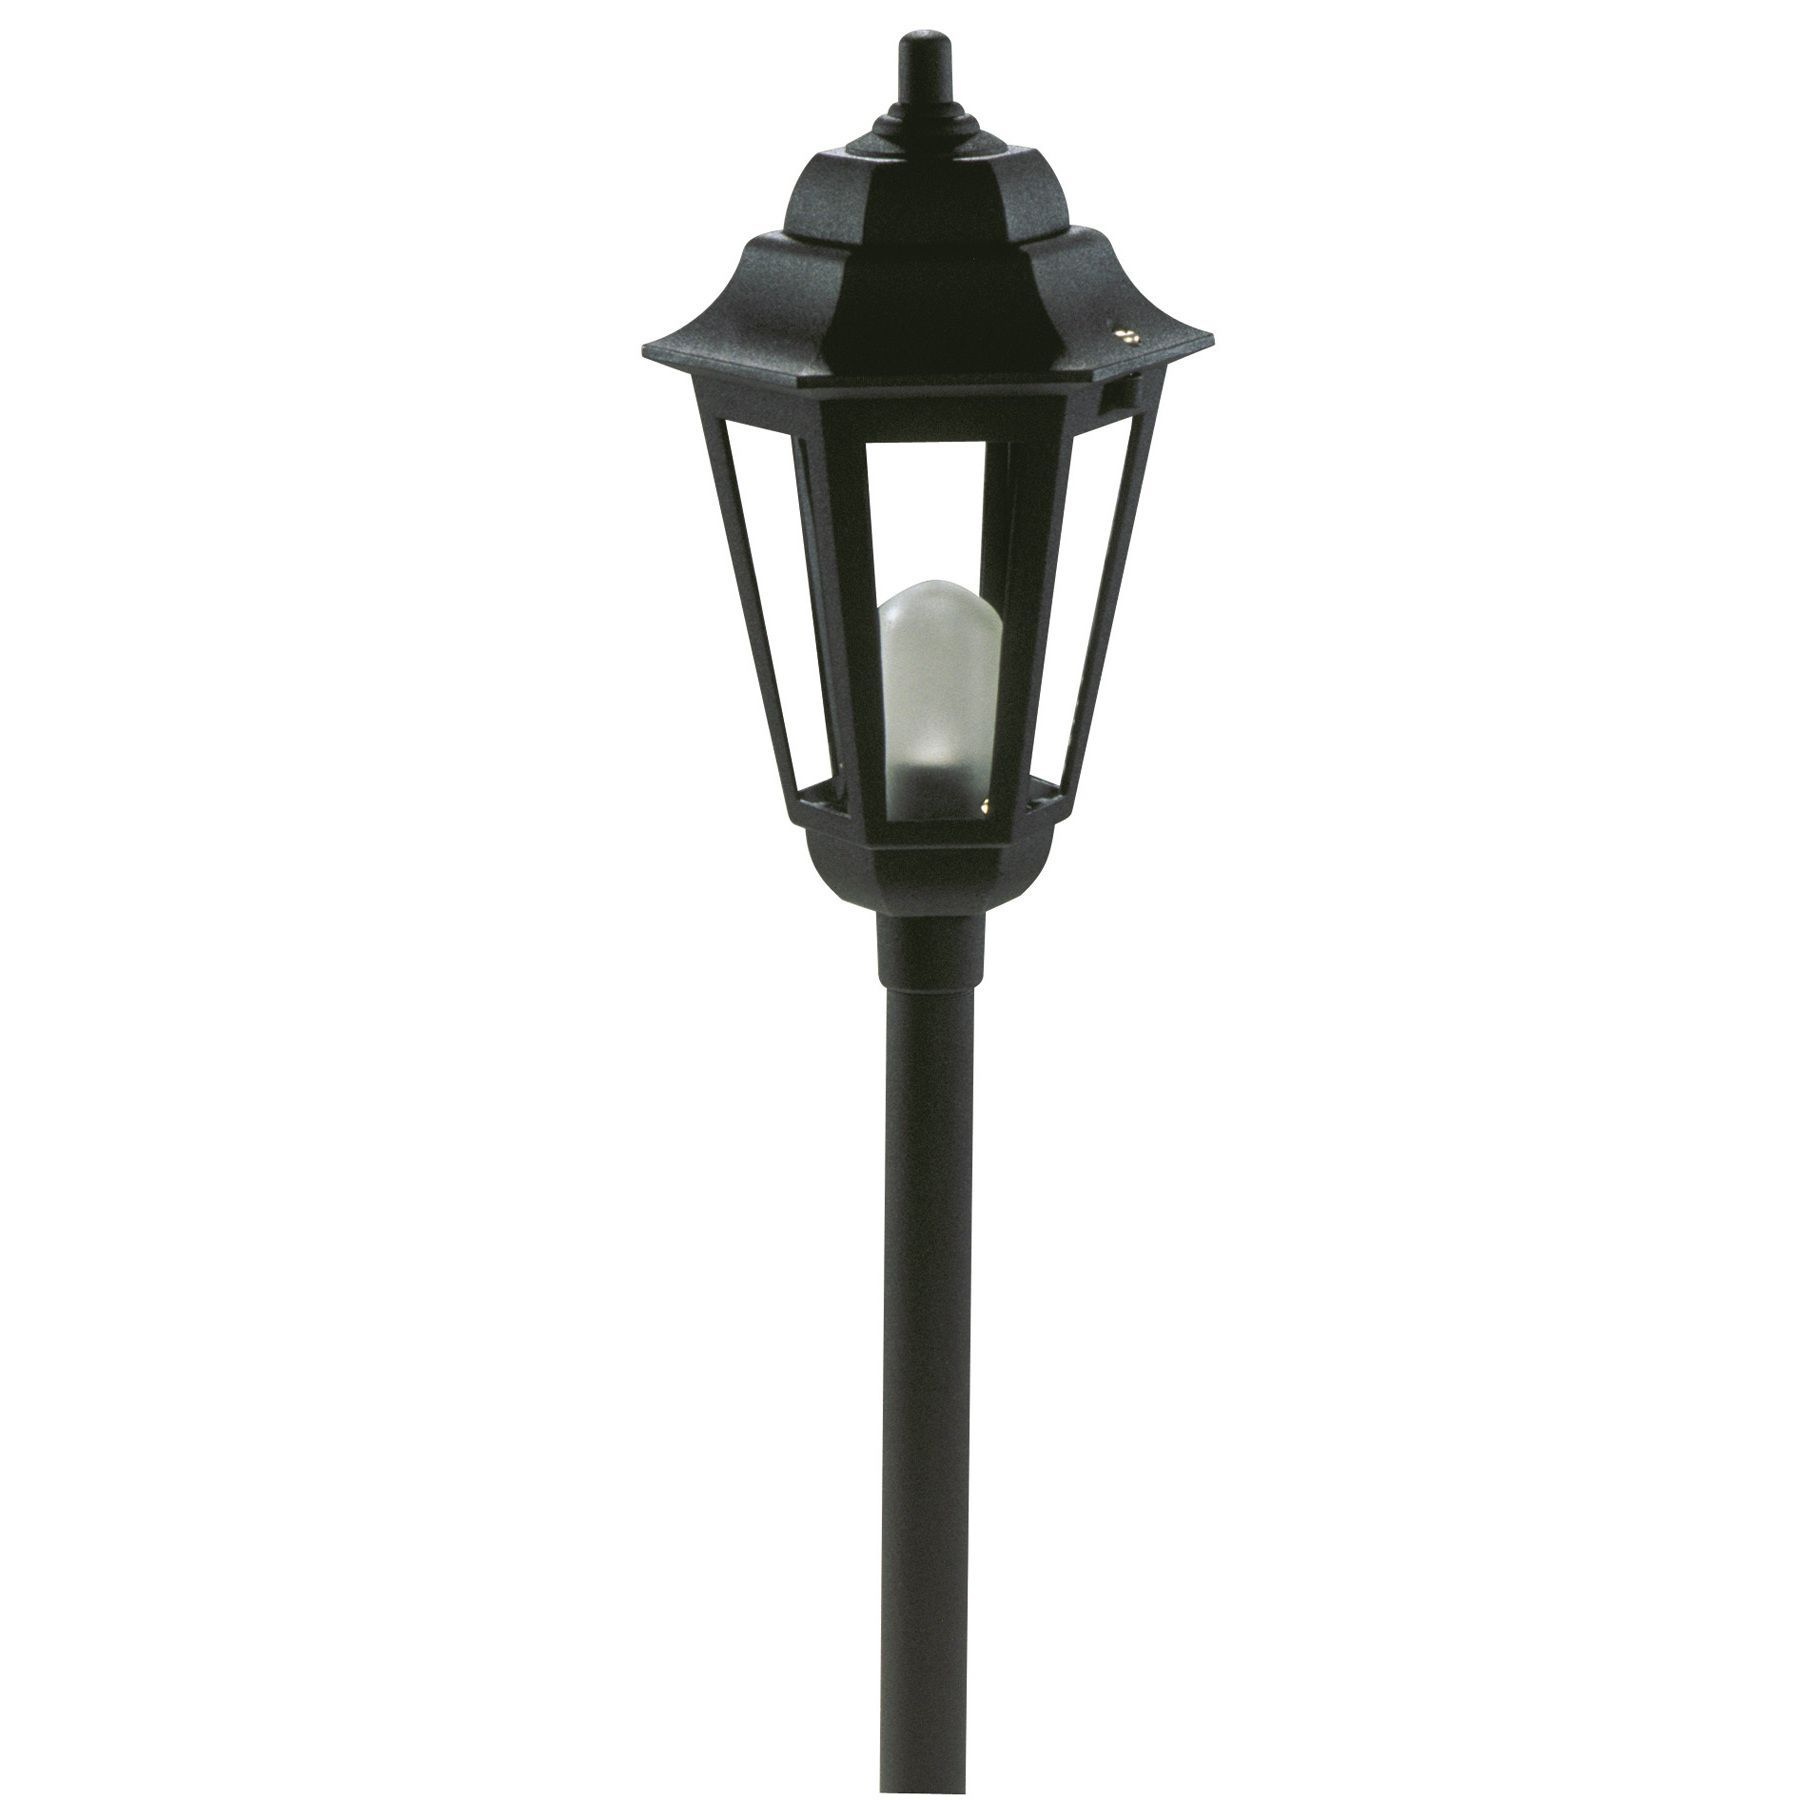 Paradise Gl22768bk 12 Volt Black Savannah Style Path Light Outdoor Lighting Glass Outdoor Path Lighting Path Lights Post Lights